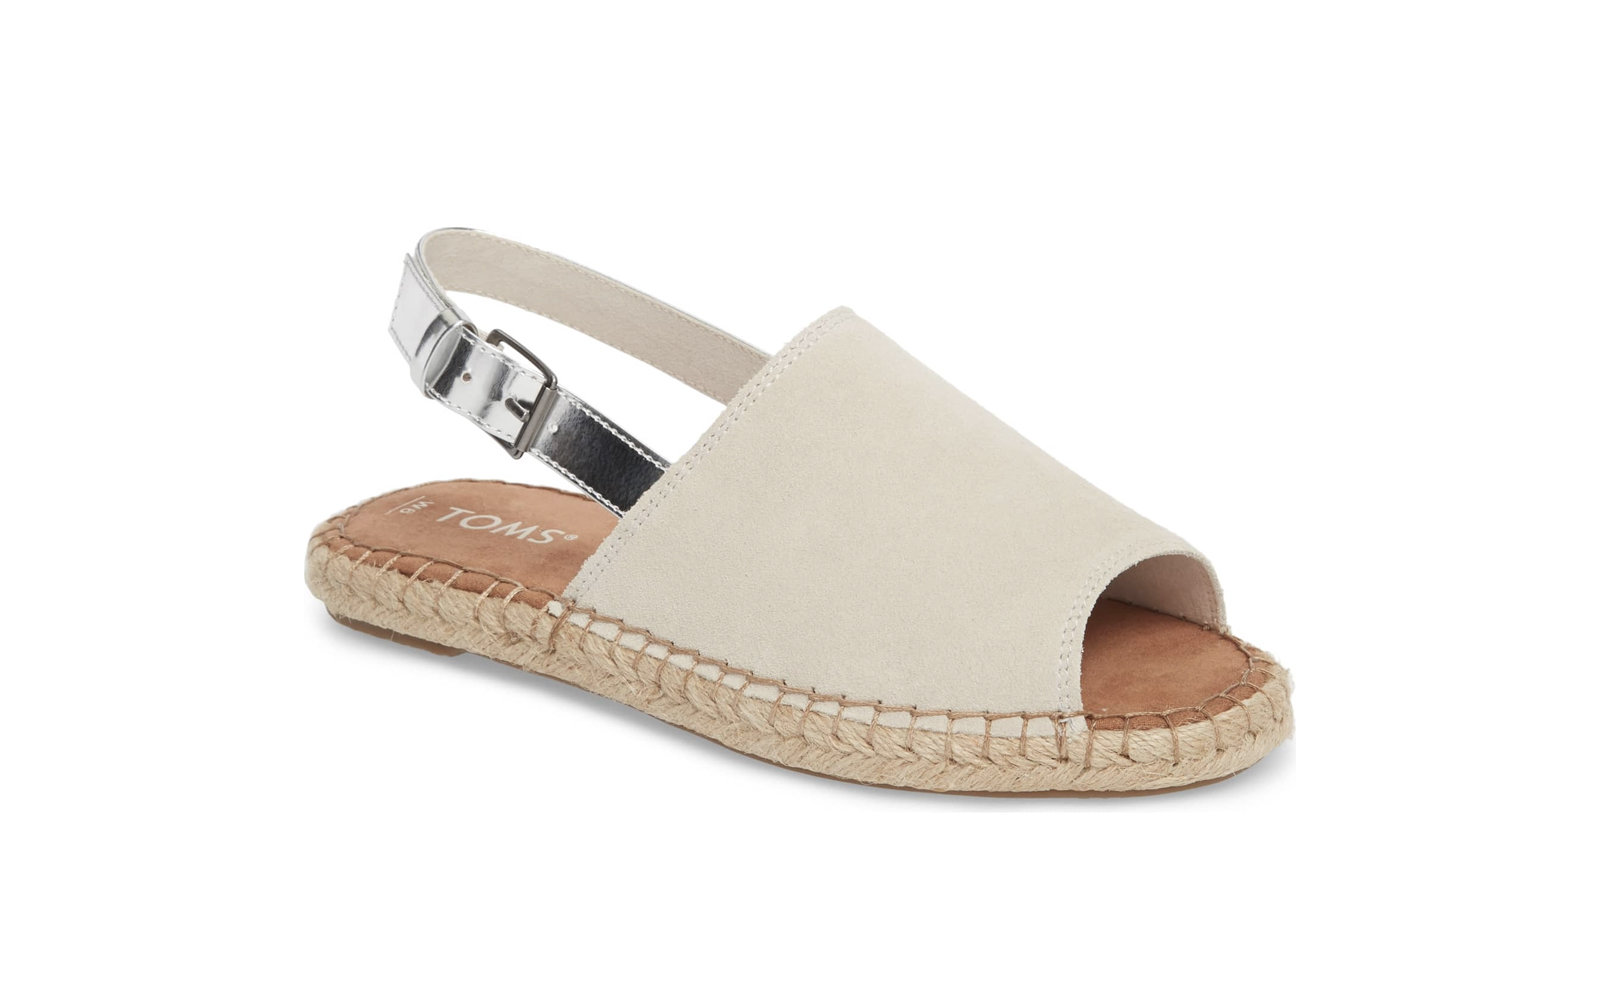 b40d304391978 TOMS  Clara  Slingback Sandal. Best Sandals from the Nordstrom Sale